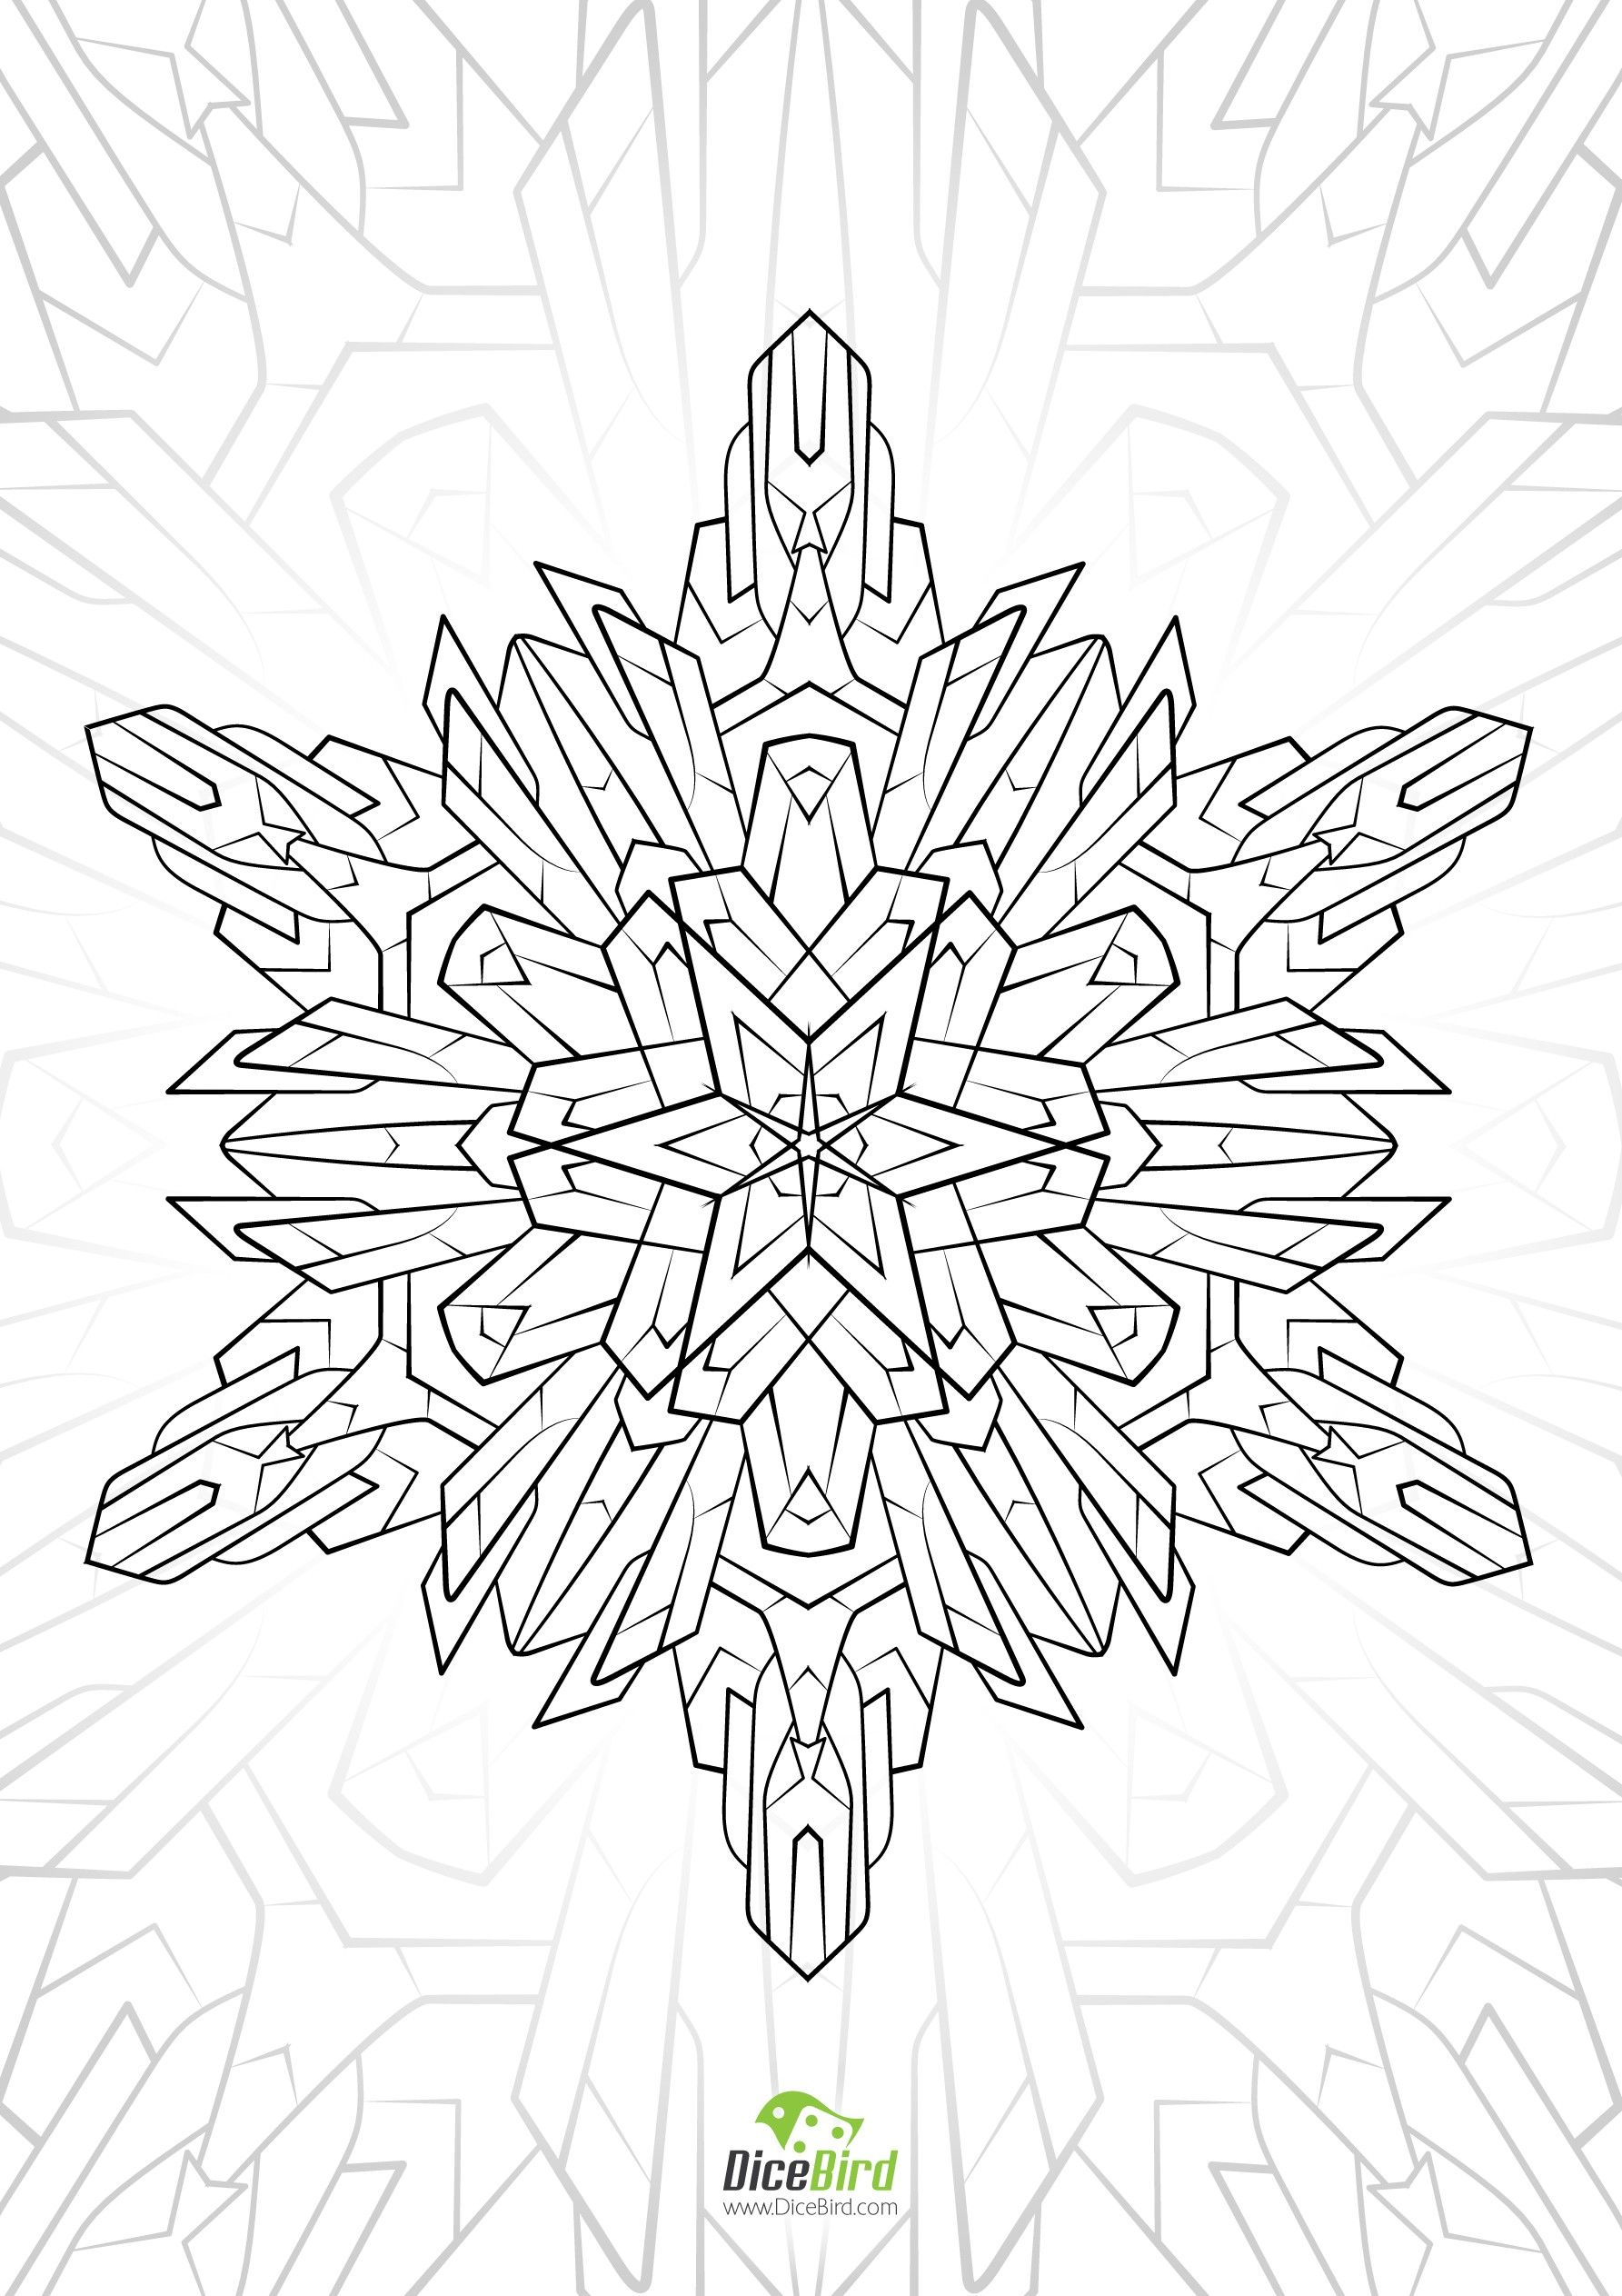 cool printable coloring pages for adults cool printable coloring pages for adults at getdrawings for pages coloring printable cool adults